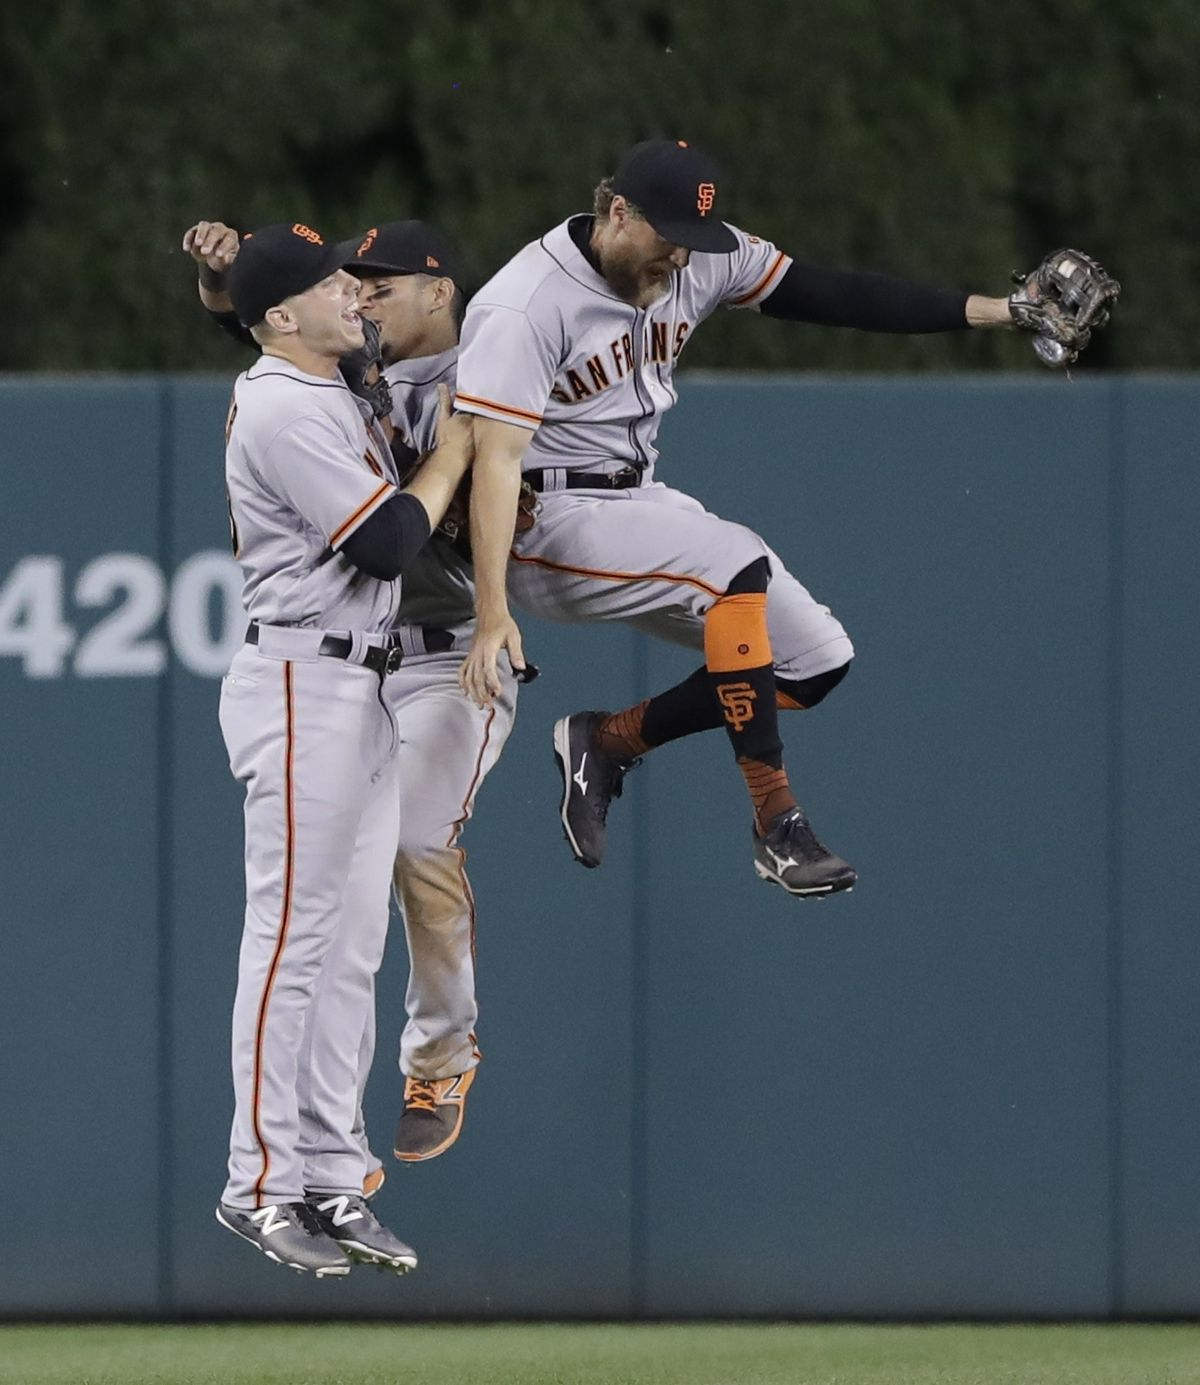 David Ross said Hunter Pence does a good job keeping his teammates focused on the game at<br>hand.   Carlos Osorio/Associated Press